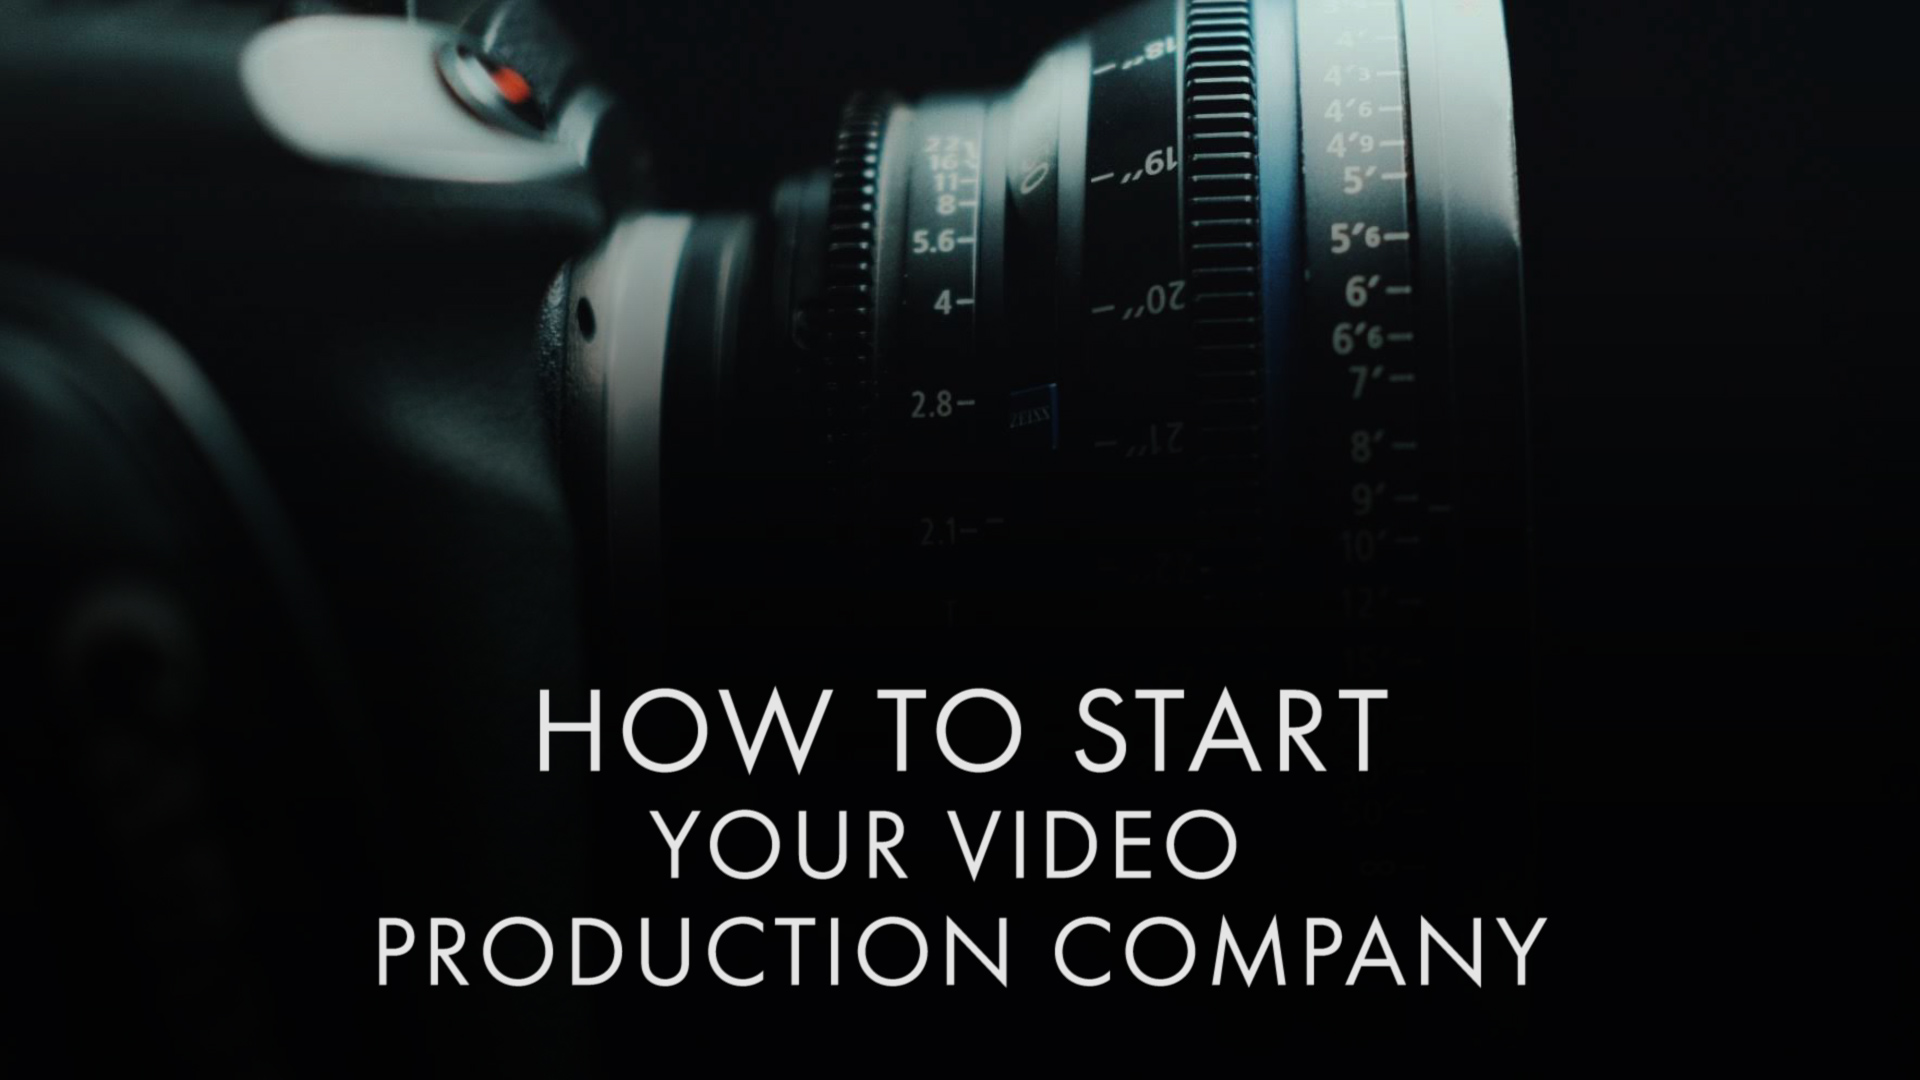 How to Start Your Video Production Company - Online Course Available